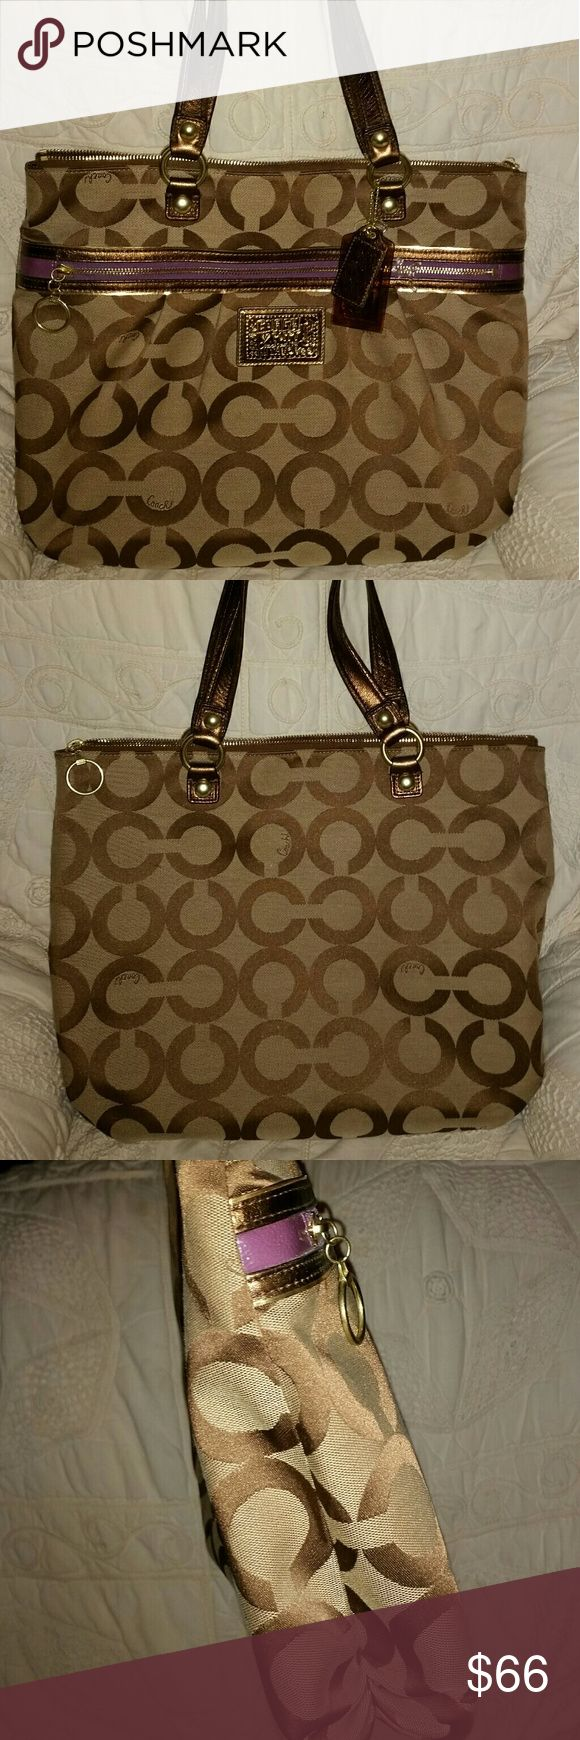 NWOT AUTHENTIC COACH POPPY LARGE DIPPERED TOTE This is brand new no tags excellent conditon smoke free home its a beige champagne in color 17 wide by 15 tall no trades price is firm on this its brand new all 3 hand tags r in it as well. Coach Bags Totes